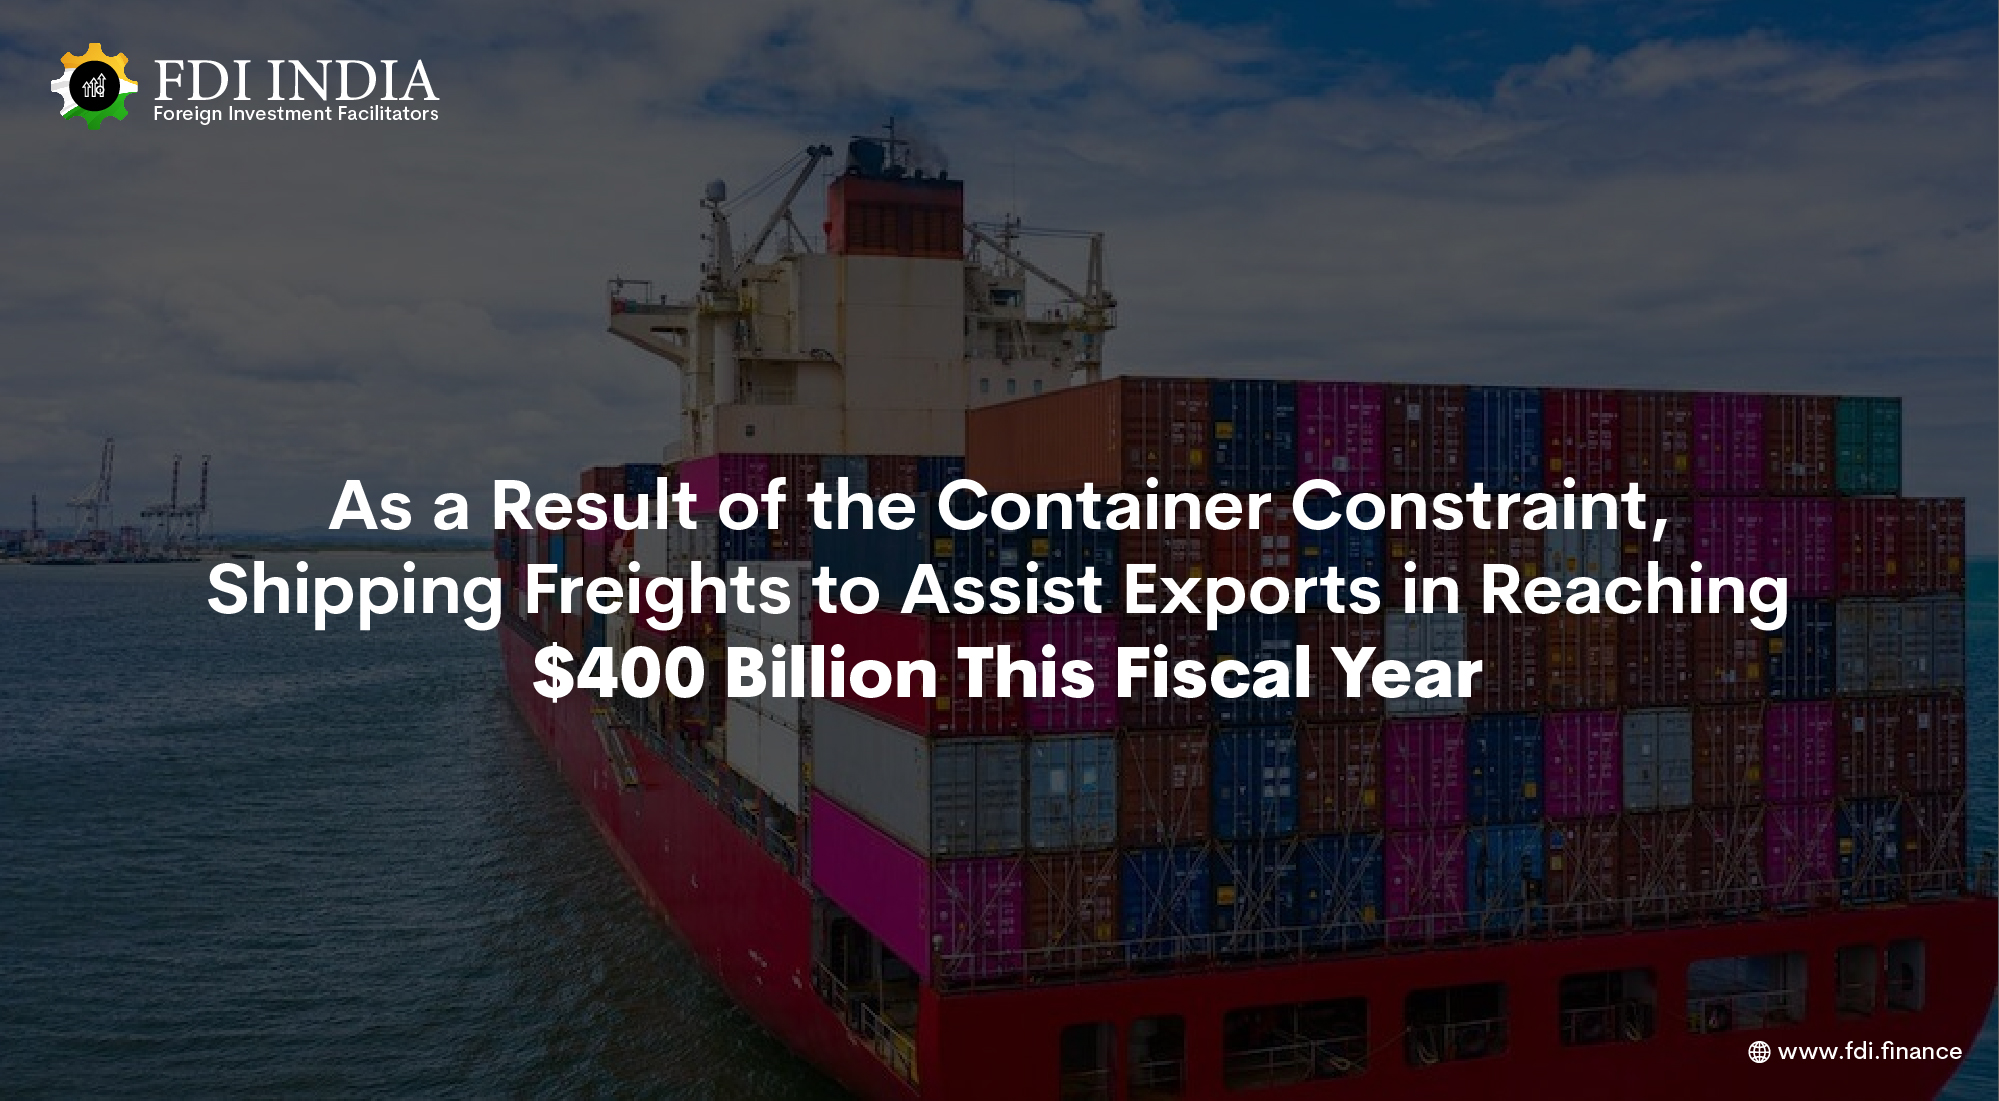 As a Result of the Container Constraint, Shipping Freights to Assist Exports in Reaching $400 Billion This Fiscal Year